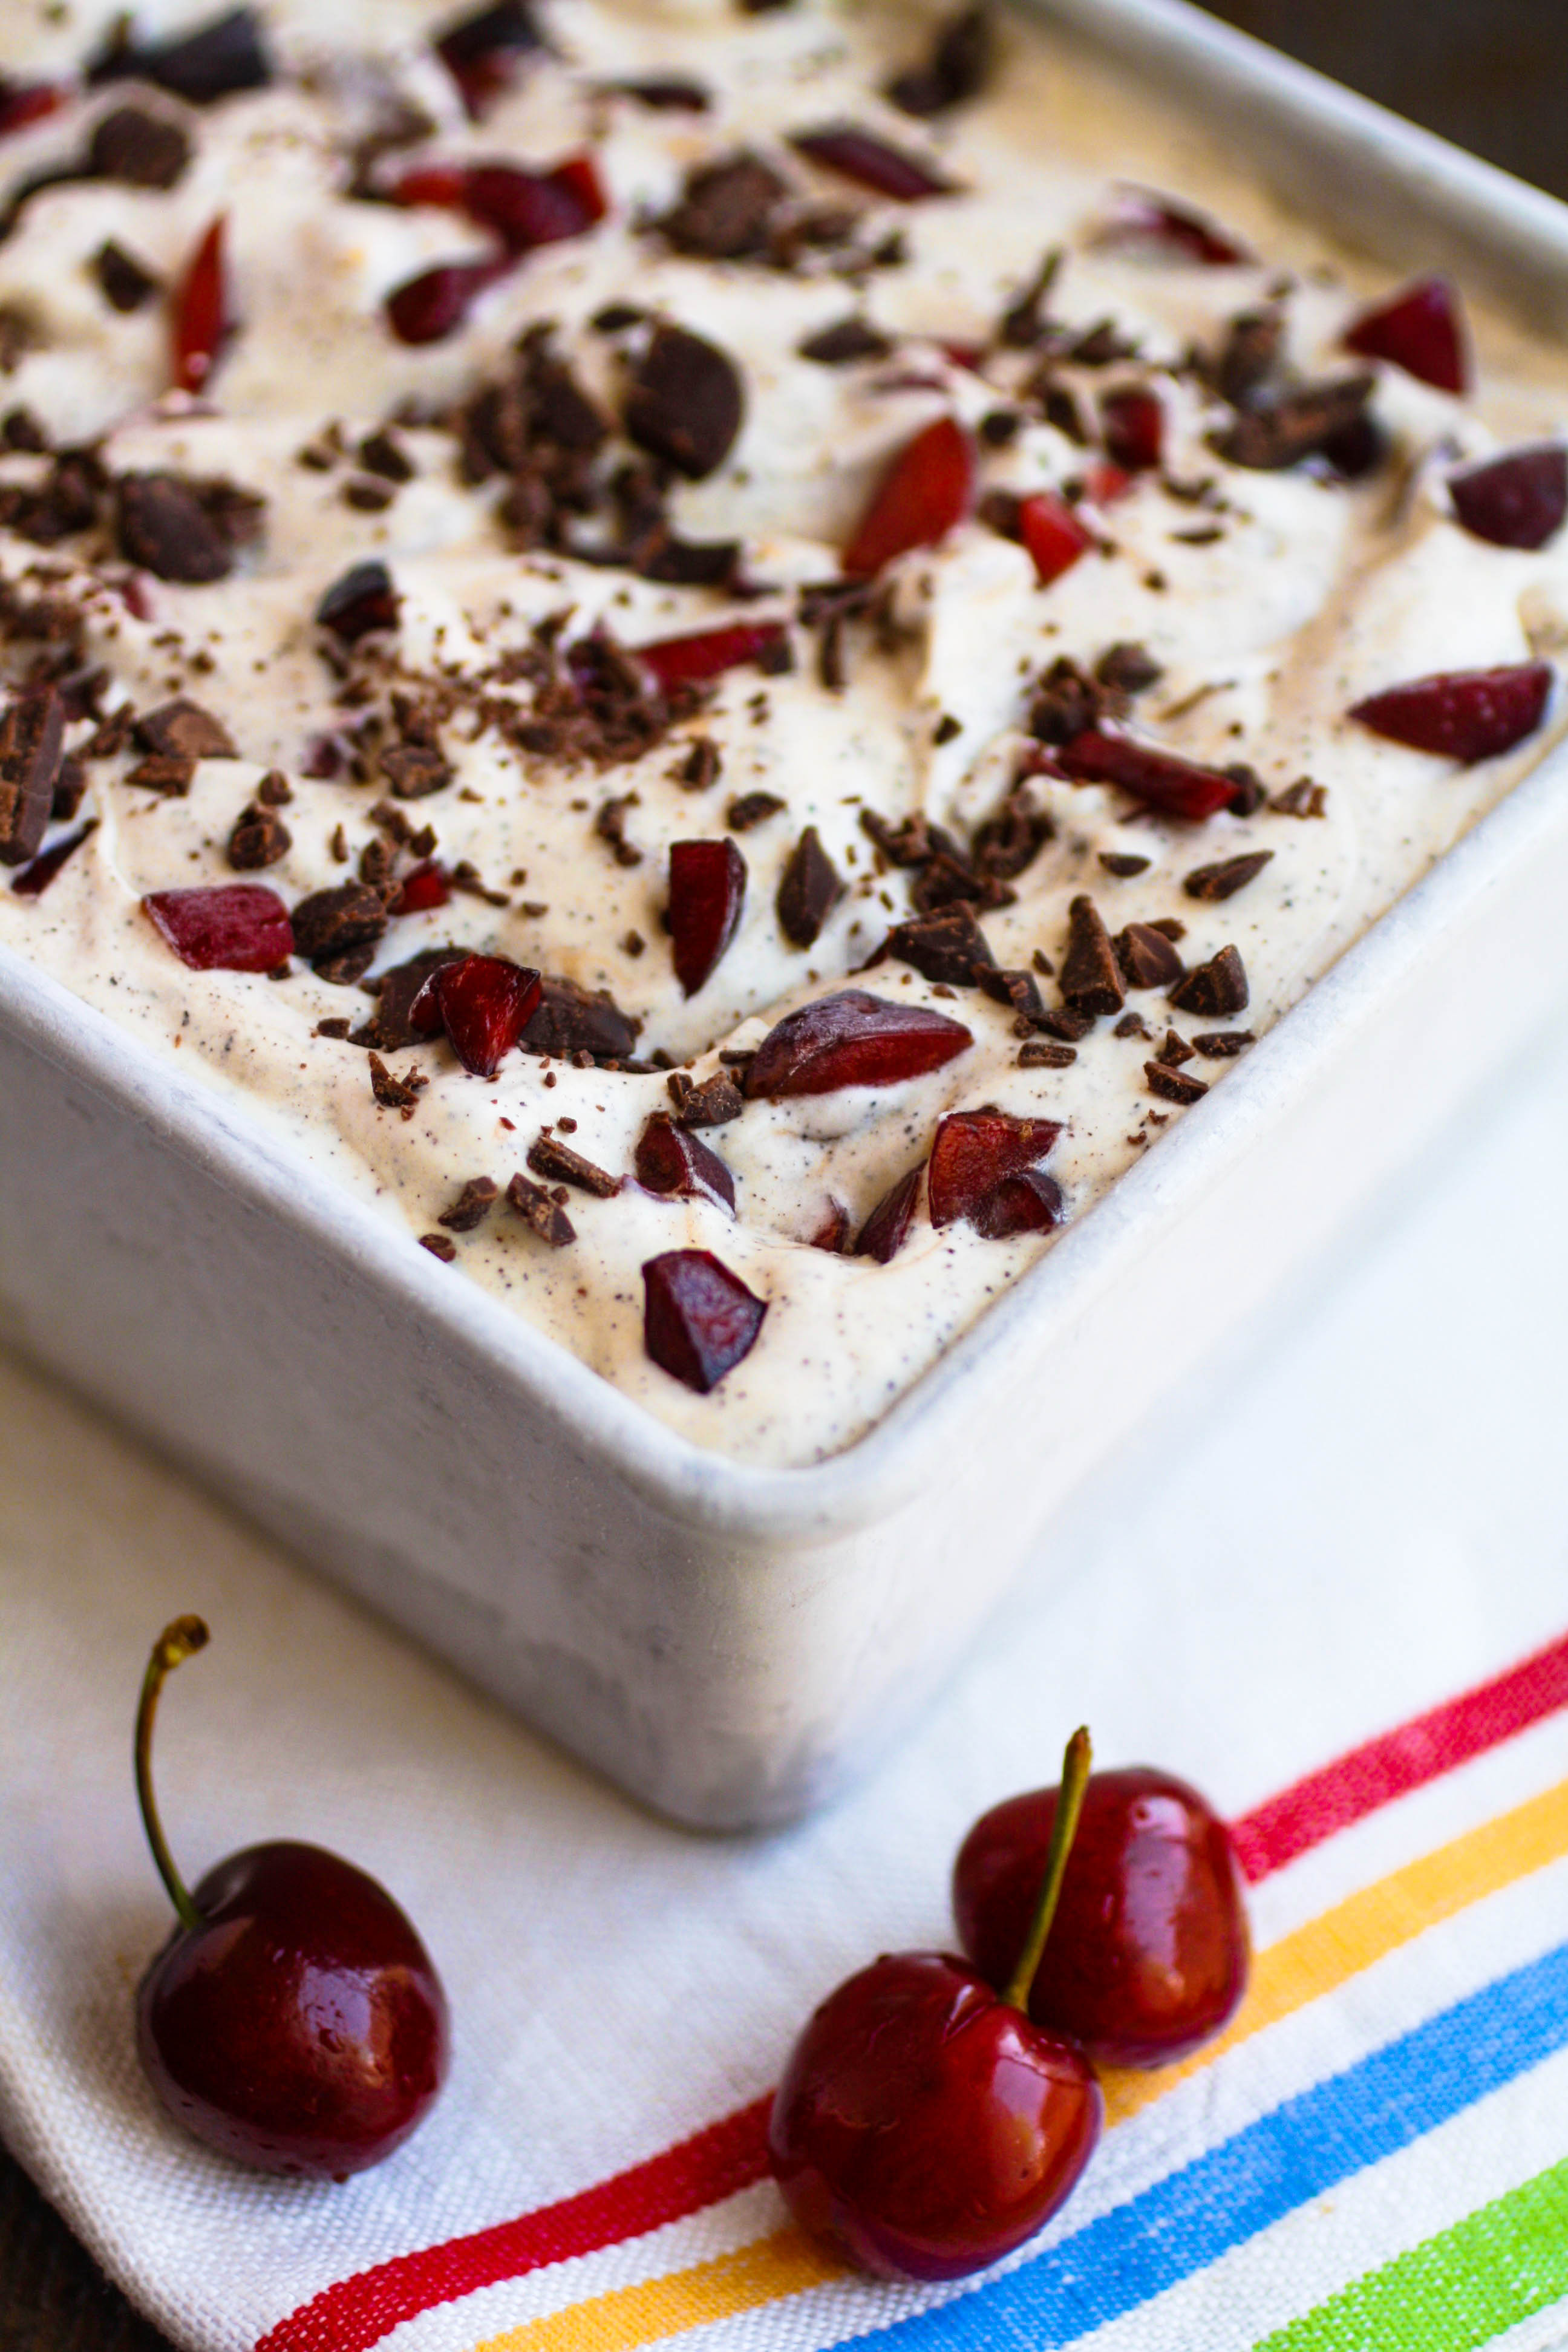 No Churn Cherry Chocolate Chip Espresso Ice Cream is a delicious frozen goodie! Make a batch today (it's so easy to make, no ice cream maker needed)!